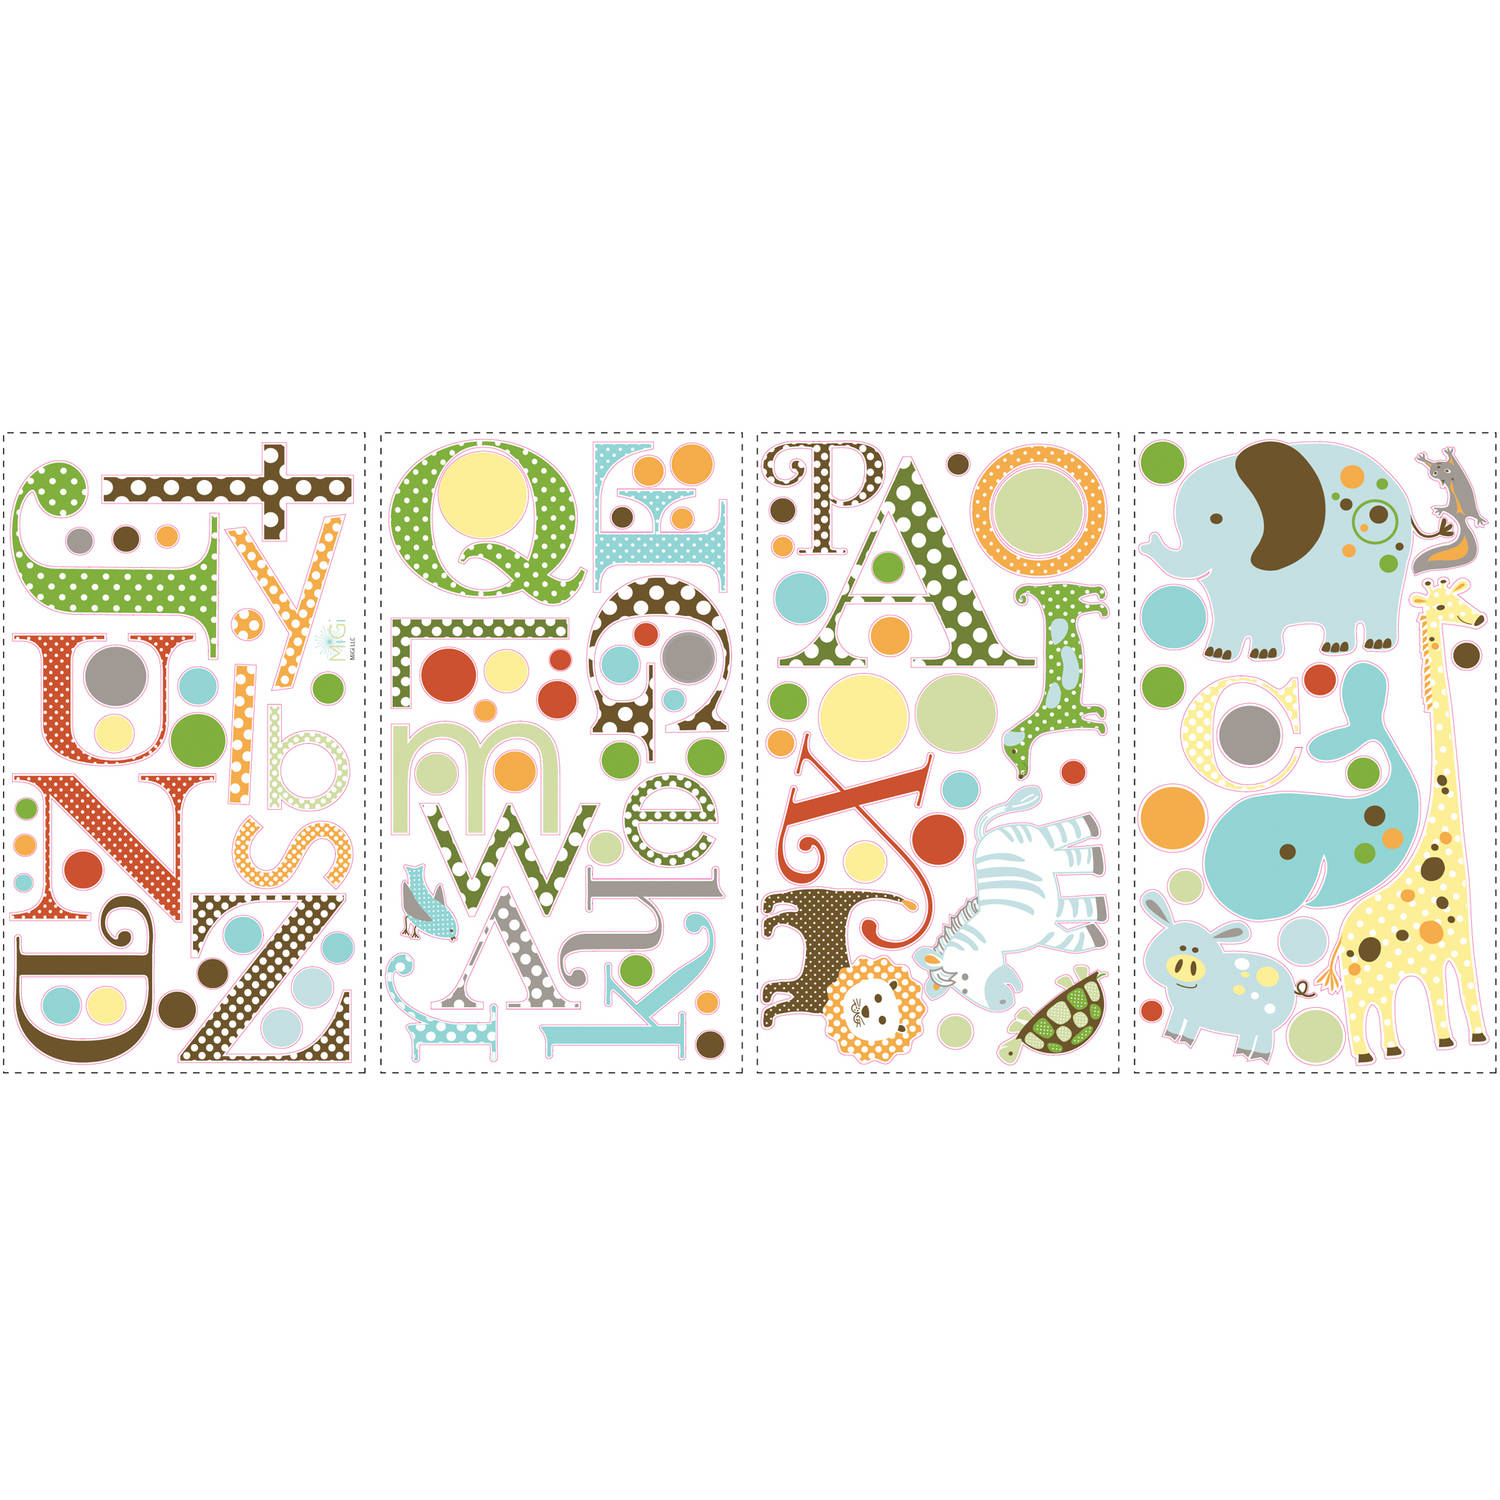 Build-a-House Peel & Stick Mega Pack Wall Decals